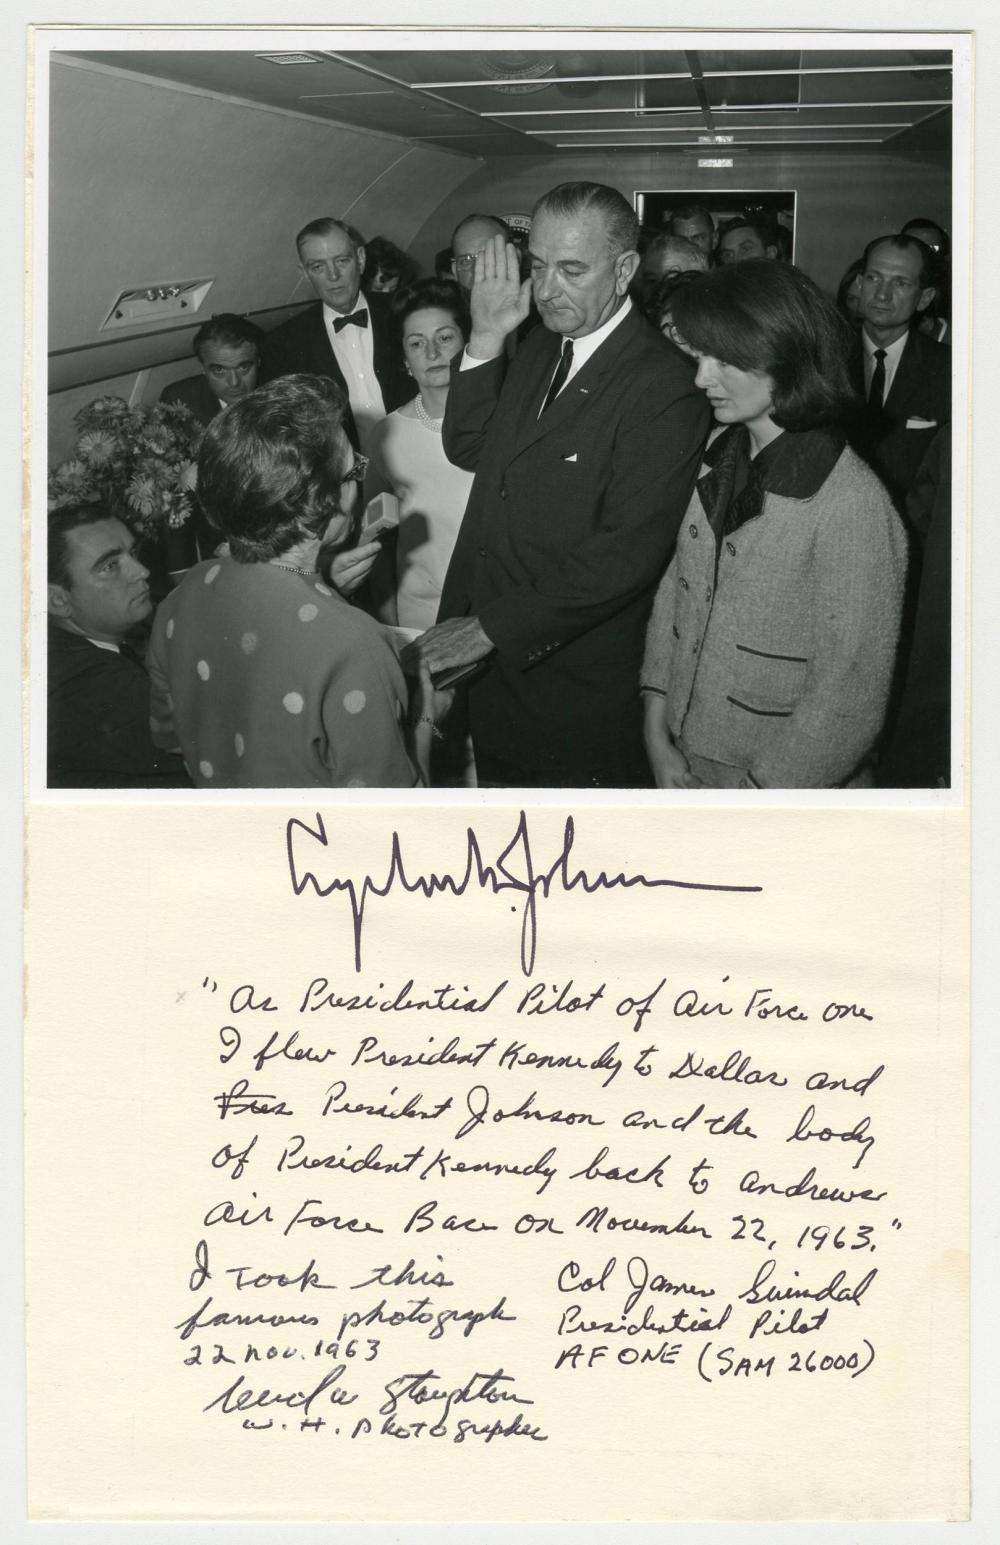 LBJ Swearing-In, Original Photo Signed by New President, Photographer, & Air Force One Pilot!